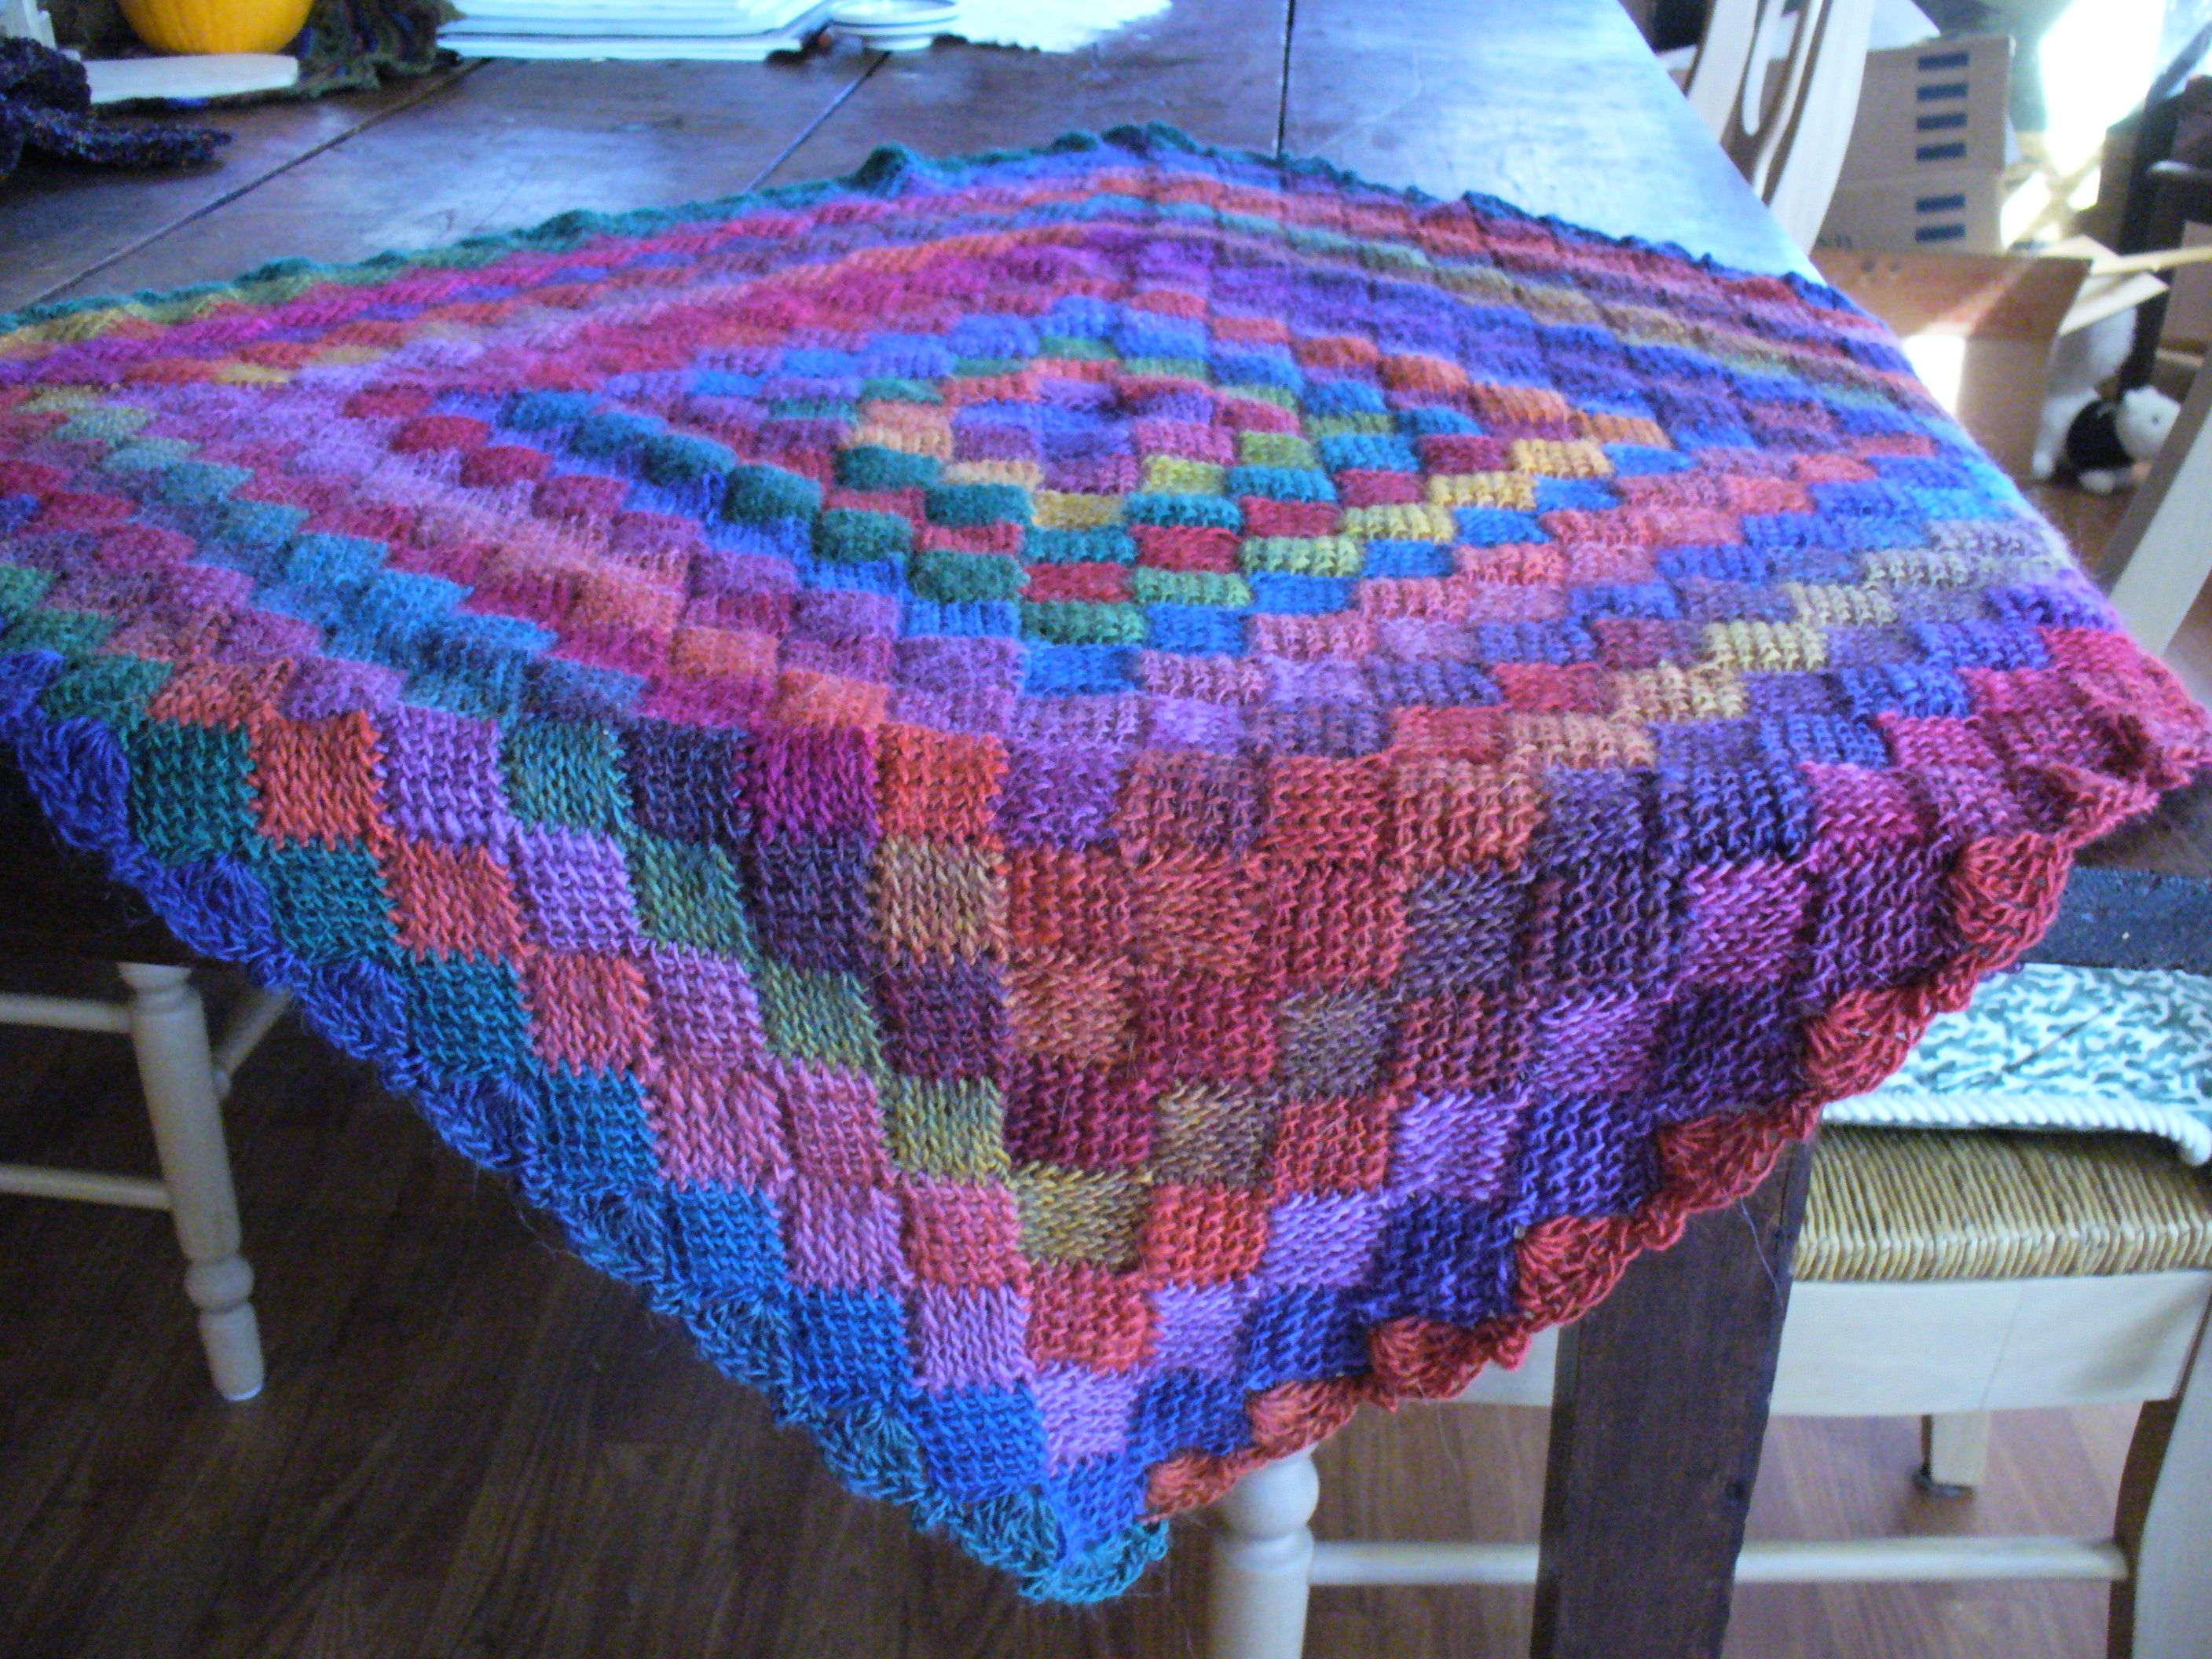 Where can i find a crochet pattern for pepsi blanket afghan where can i find a crochet pattern for pepsi blanket afghan crochet entrelac pattern tunisian bankloansurffo Image collections